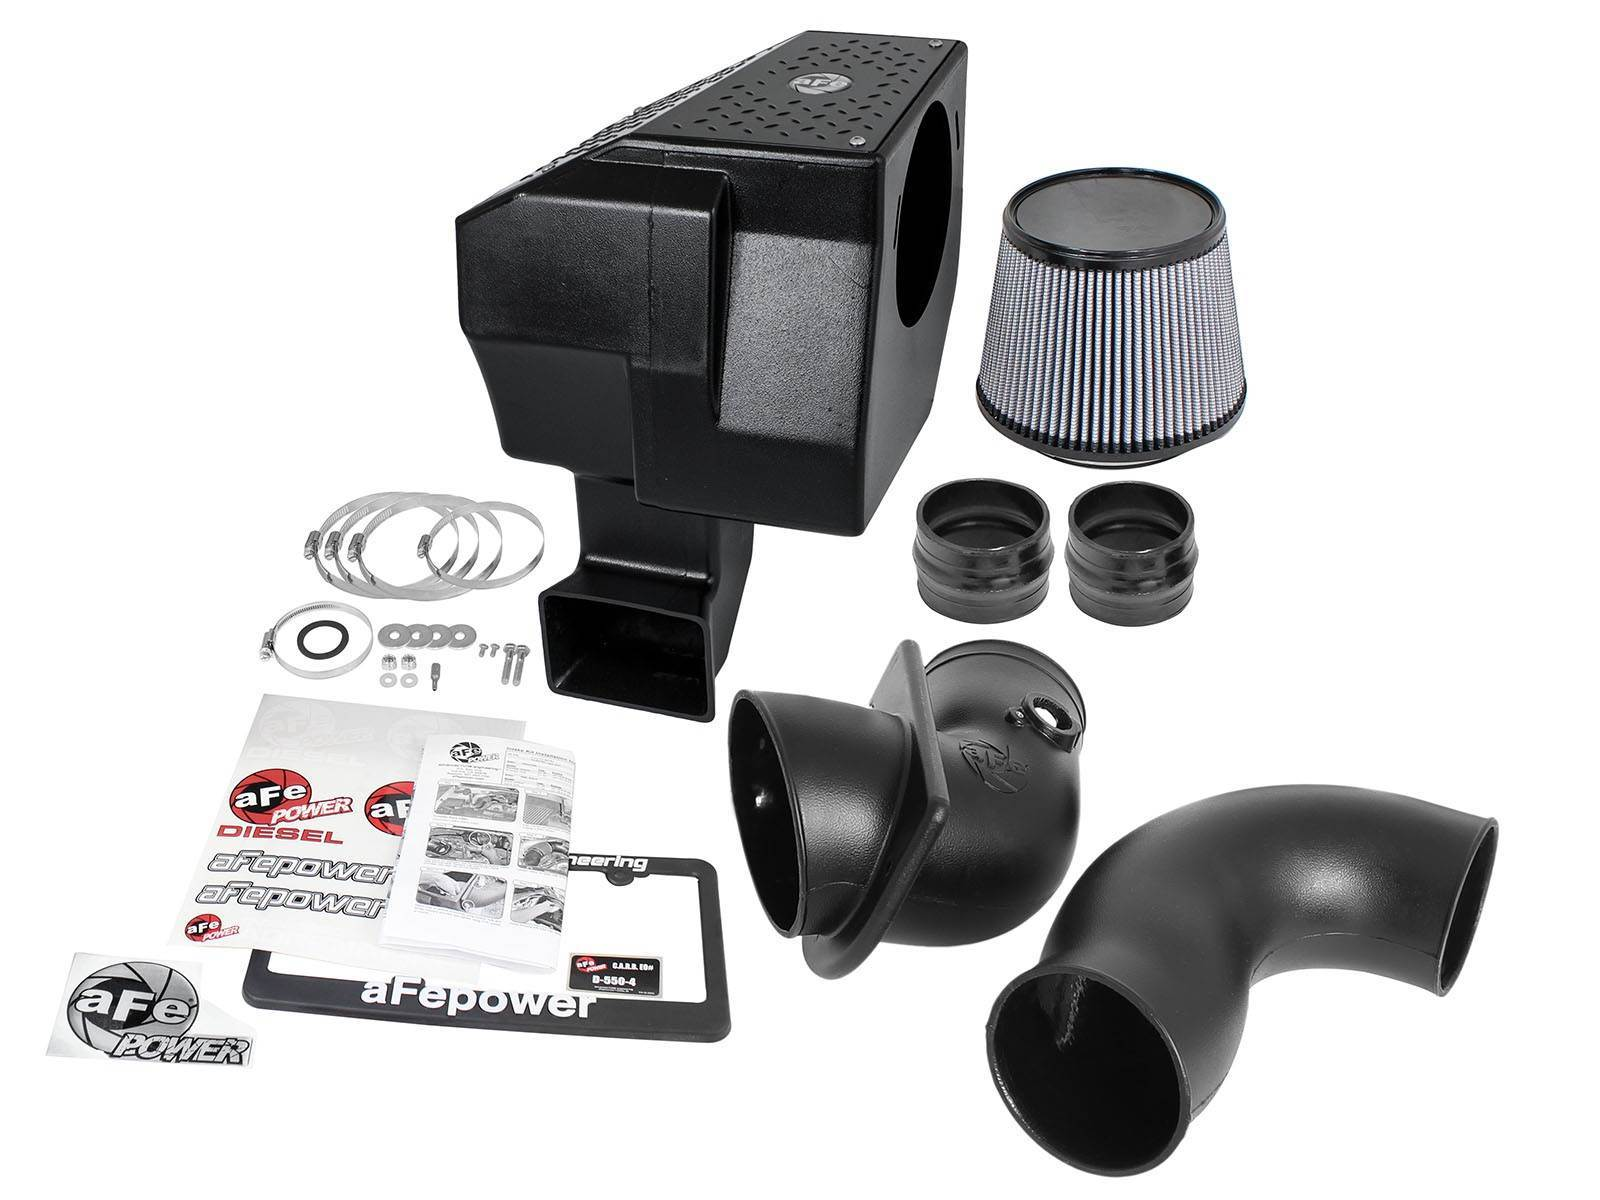 51-80882 - aFE Pro-Dry-S Type Si Performance Cold Air Intake System for 2006-2007 GMC/Chevy Duramax 6.6L LBZ diesels.